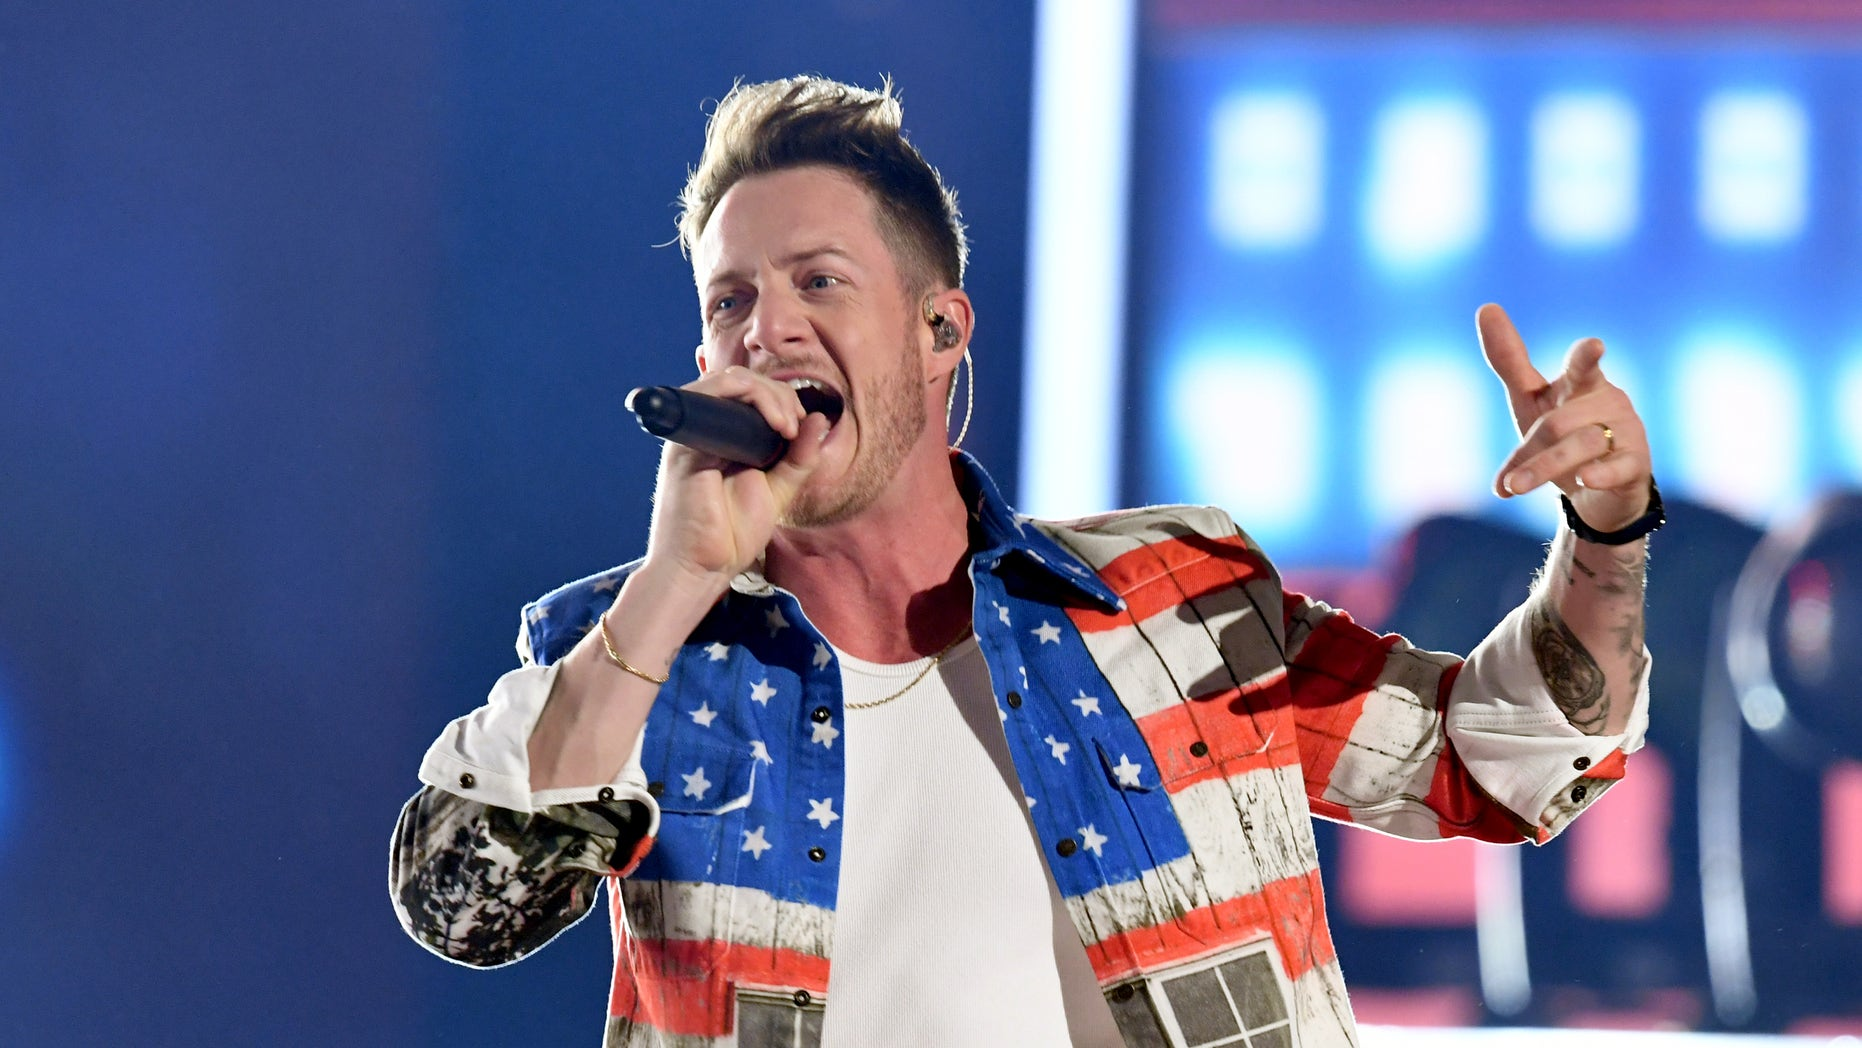 Florida Georgia Line's Tyler Hubbard, wearing an American flag jacket and jeans, performs at the 2019 ACM Awards in Las Vegas.